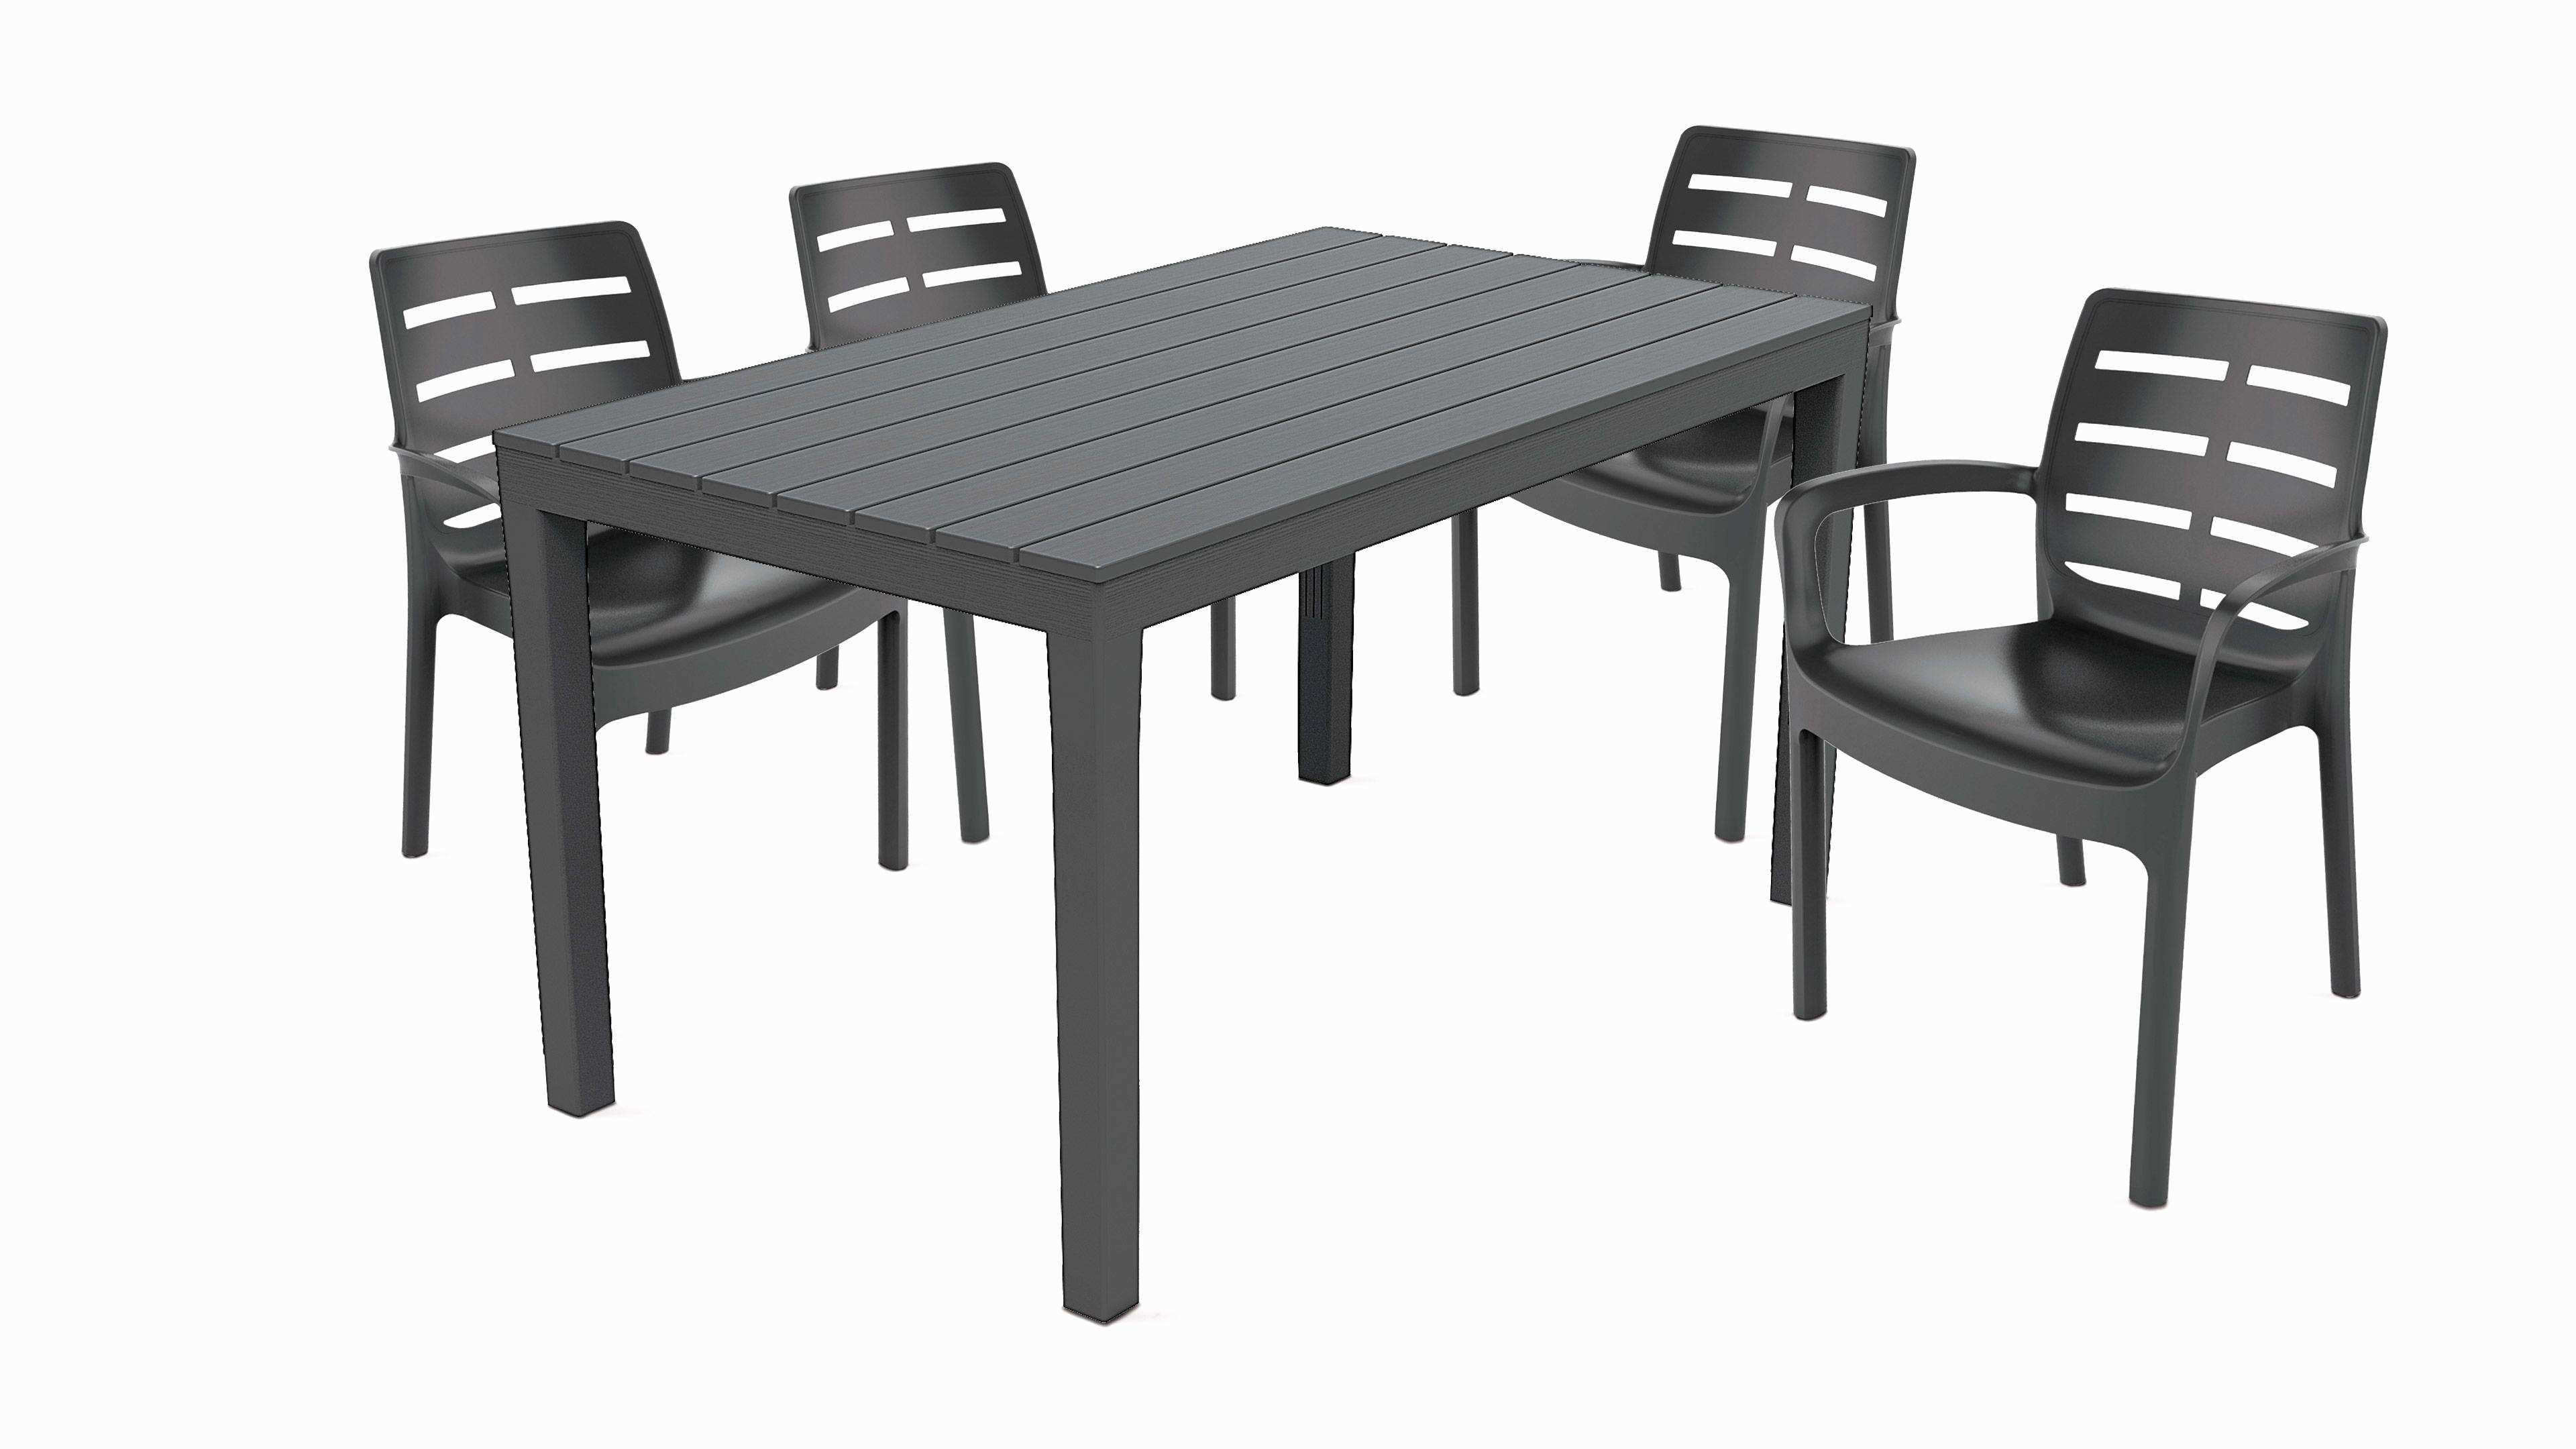 Pin by Prtha lastnight on kitchen design in 2019 | Outdoor tables ...